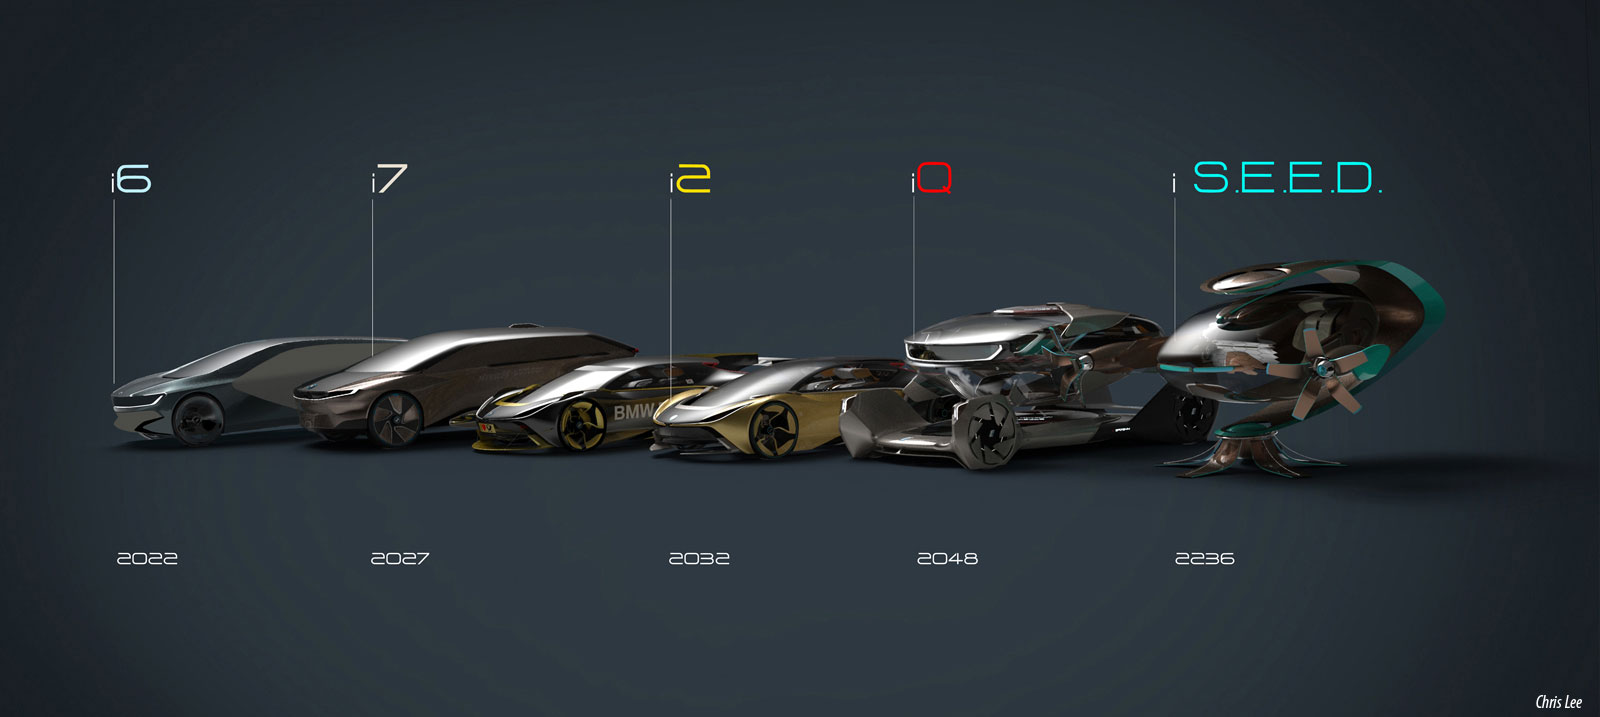 Bmw i concepts by chris lee car body design for Chris lee architect